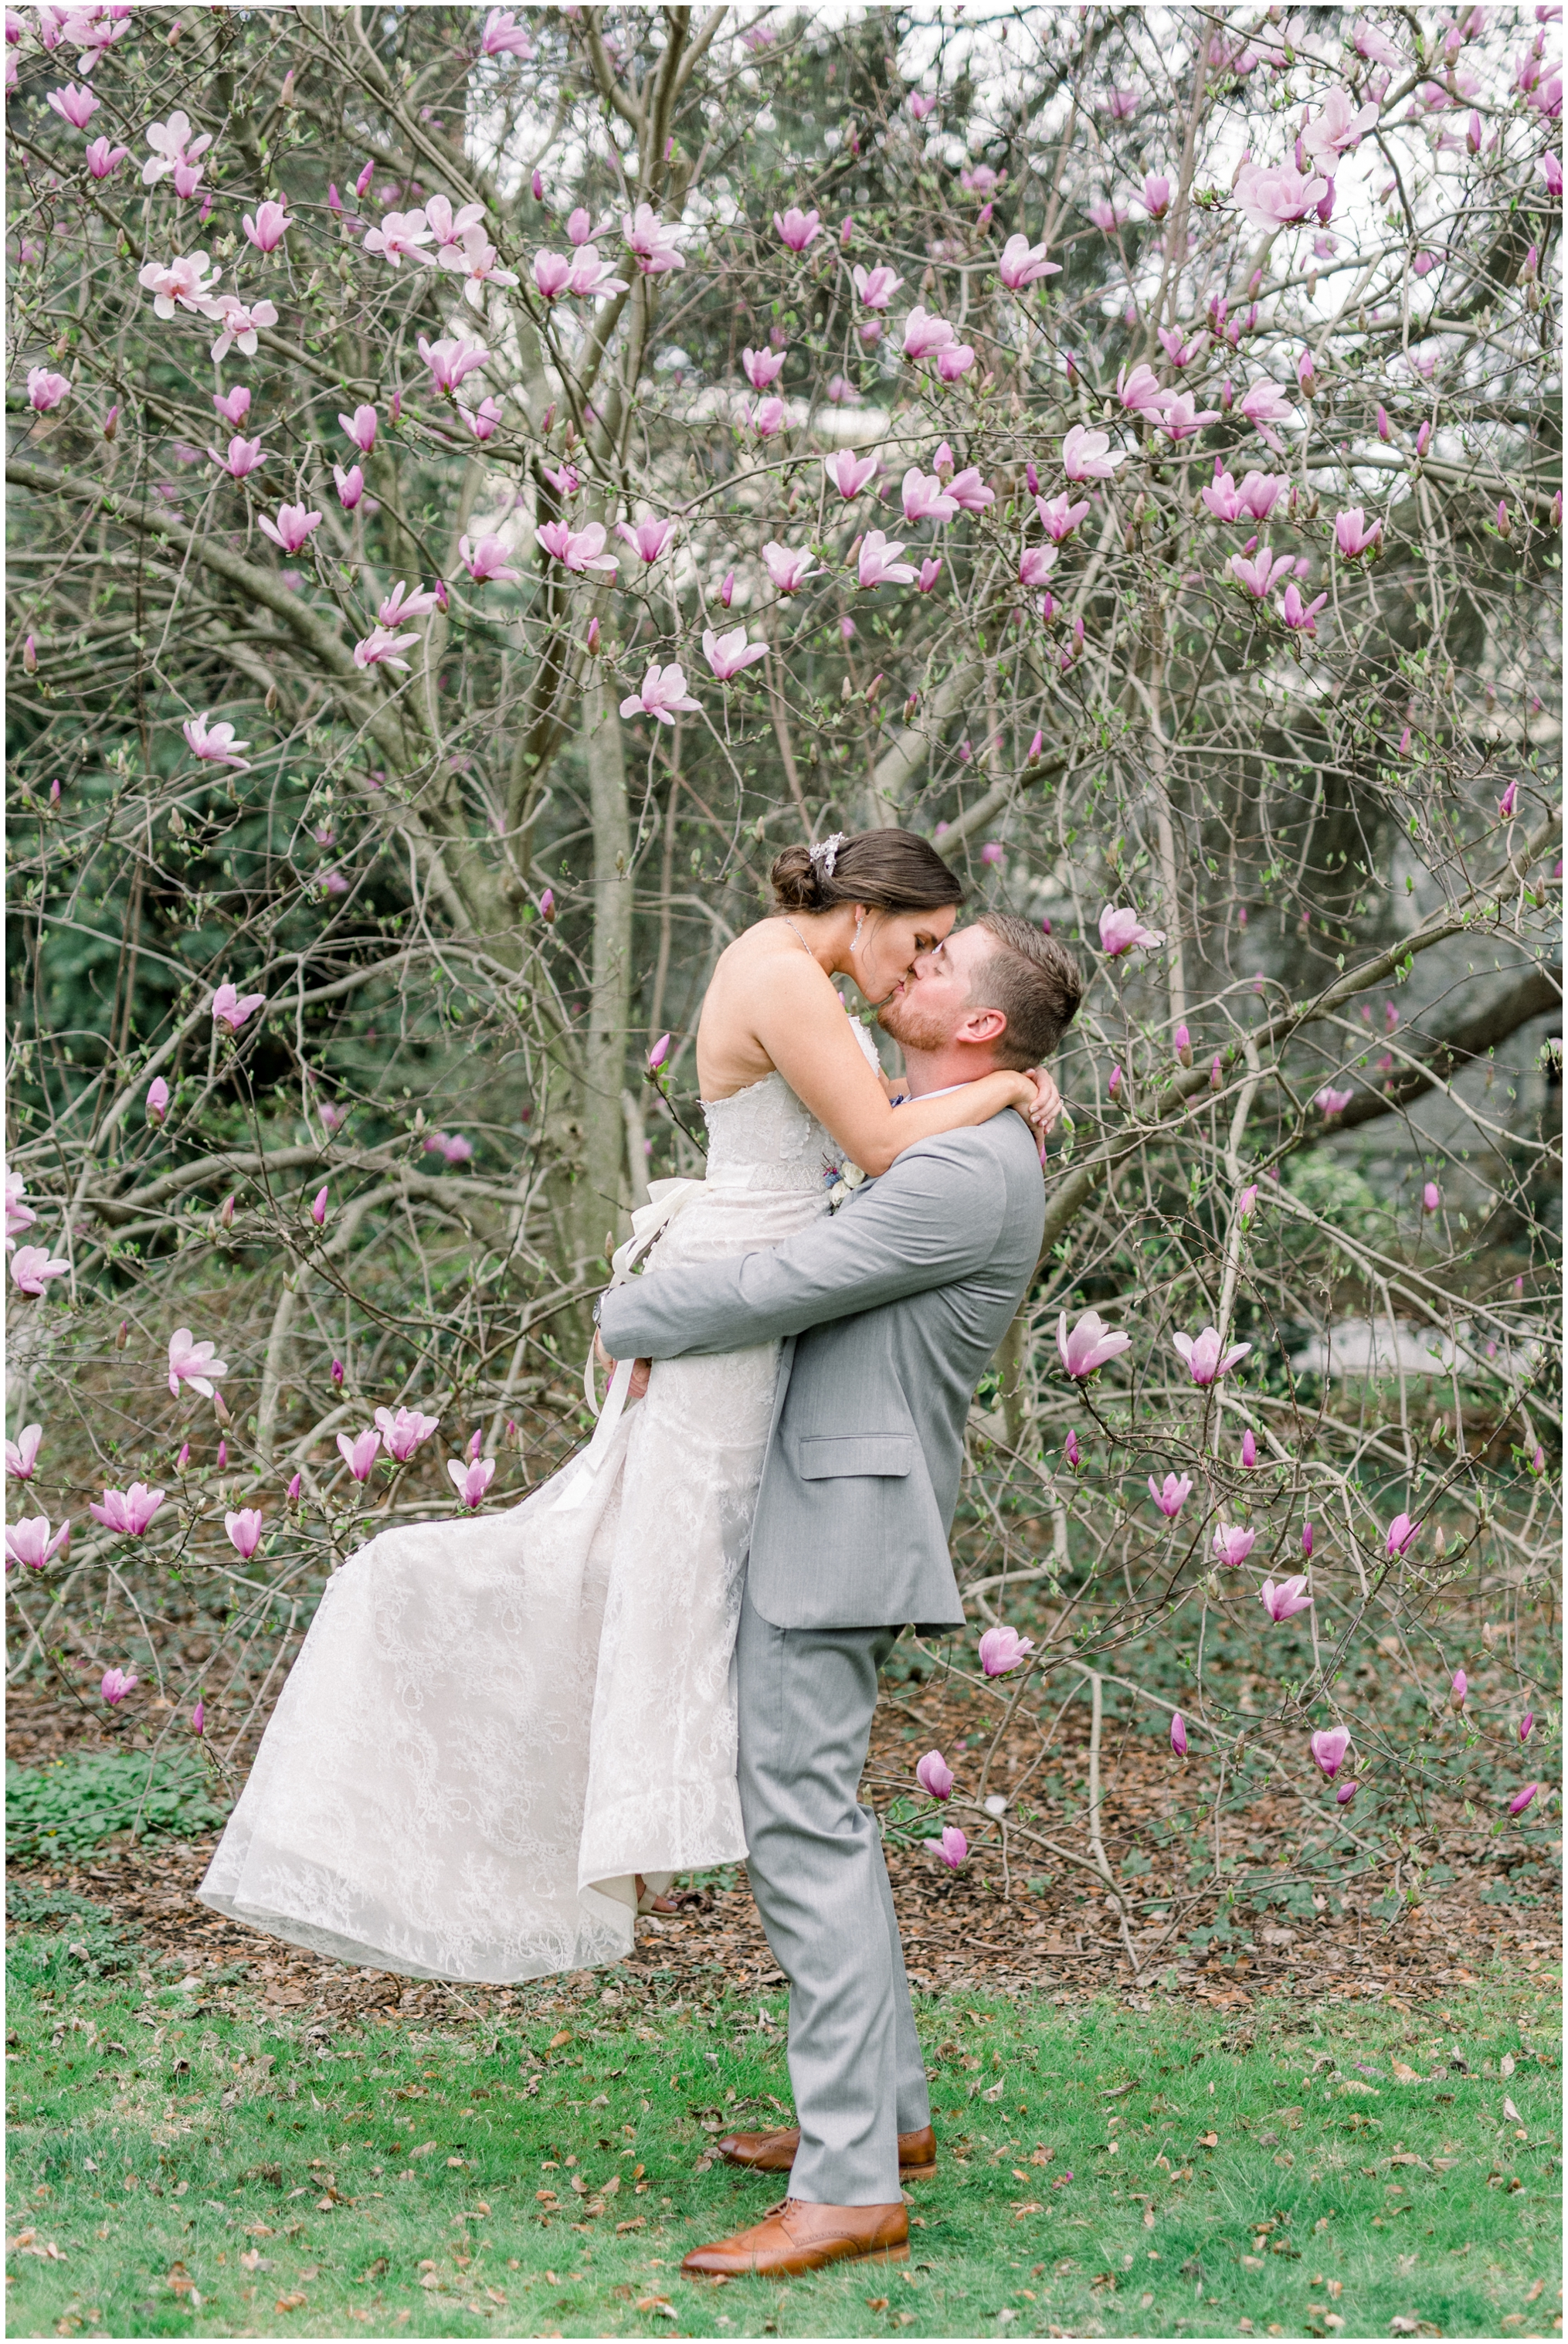 Krista Brackin Photography | April Wedding at The Carriage House at Rockwood Park_0089.jpg